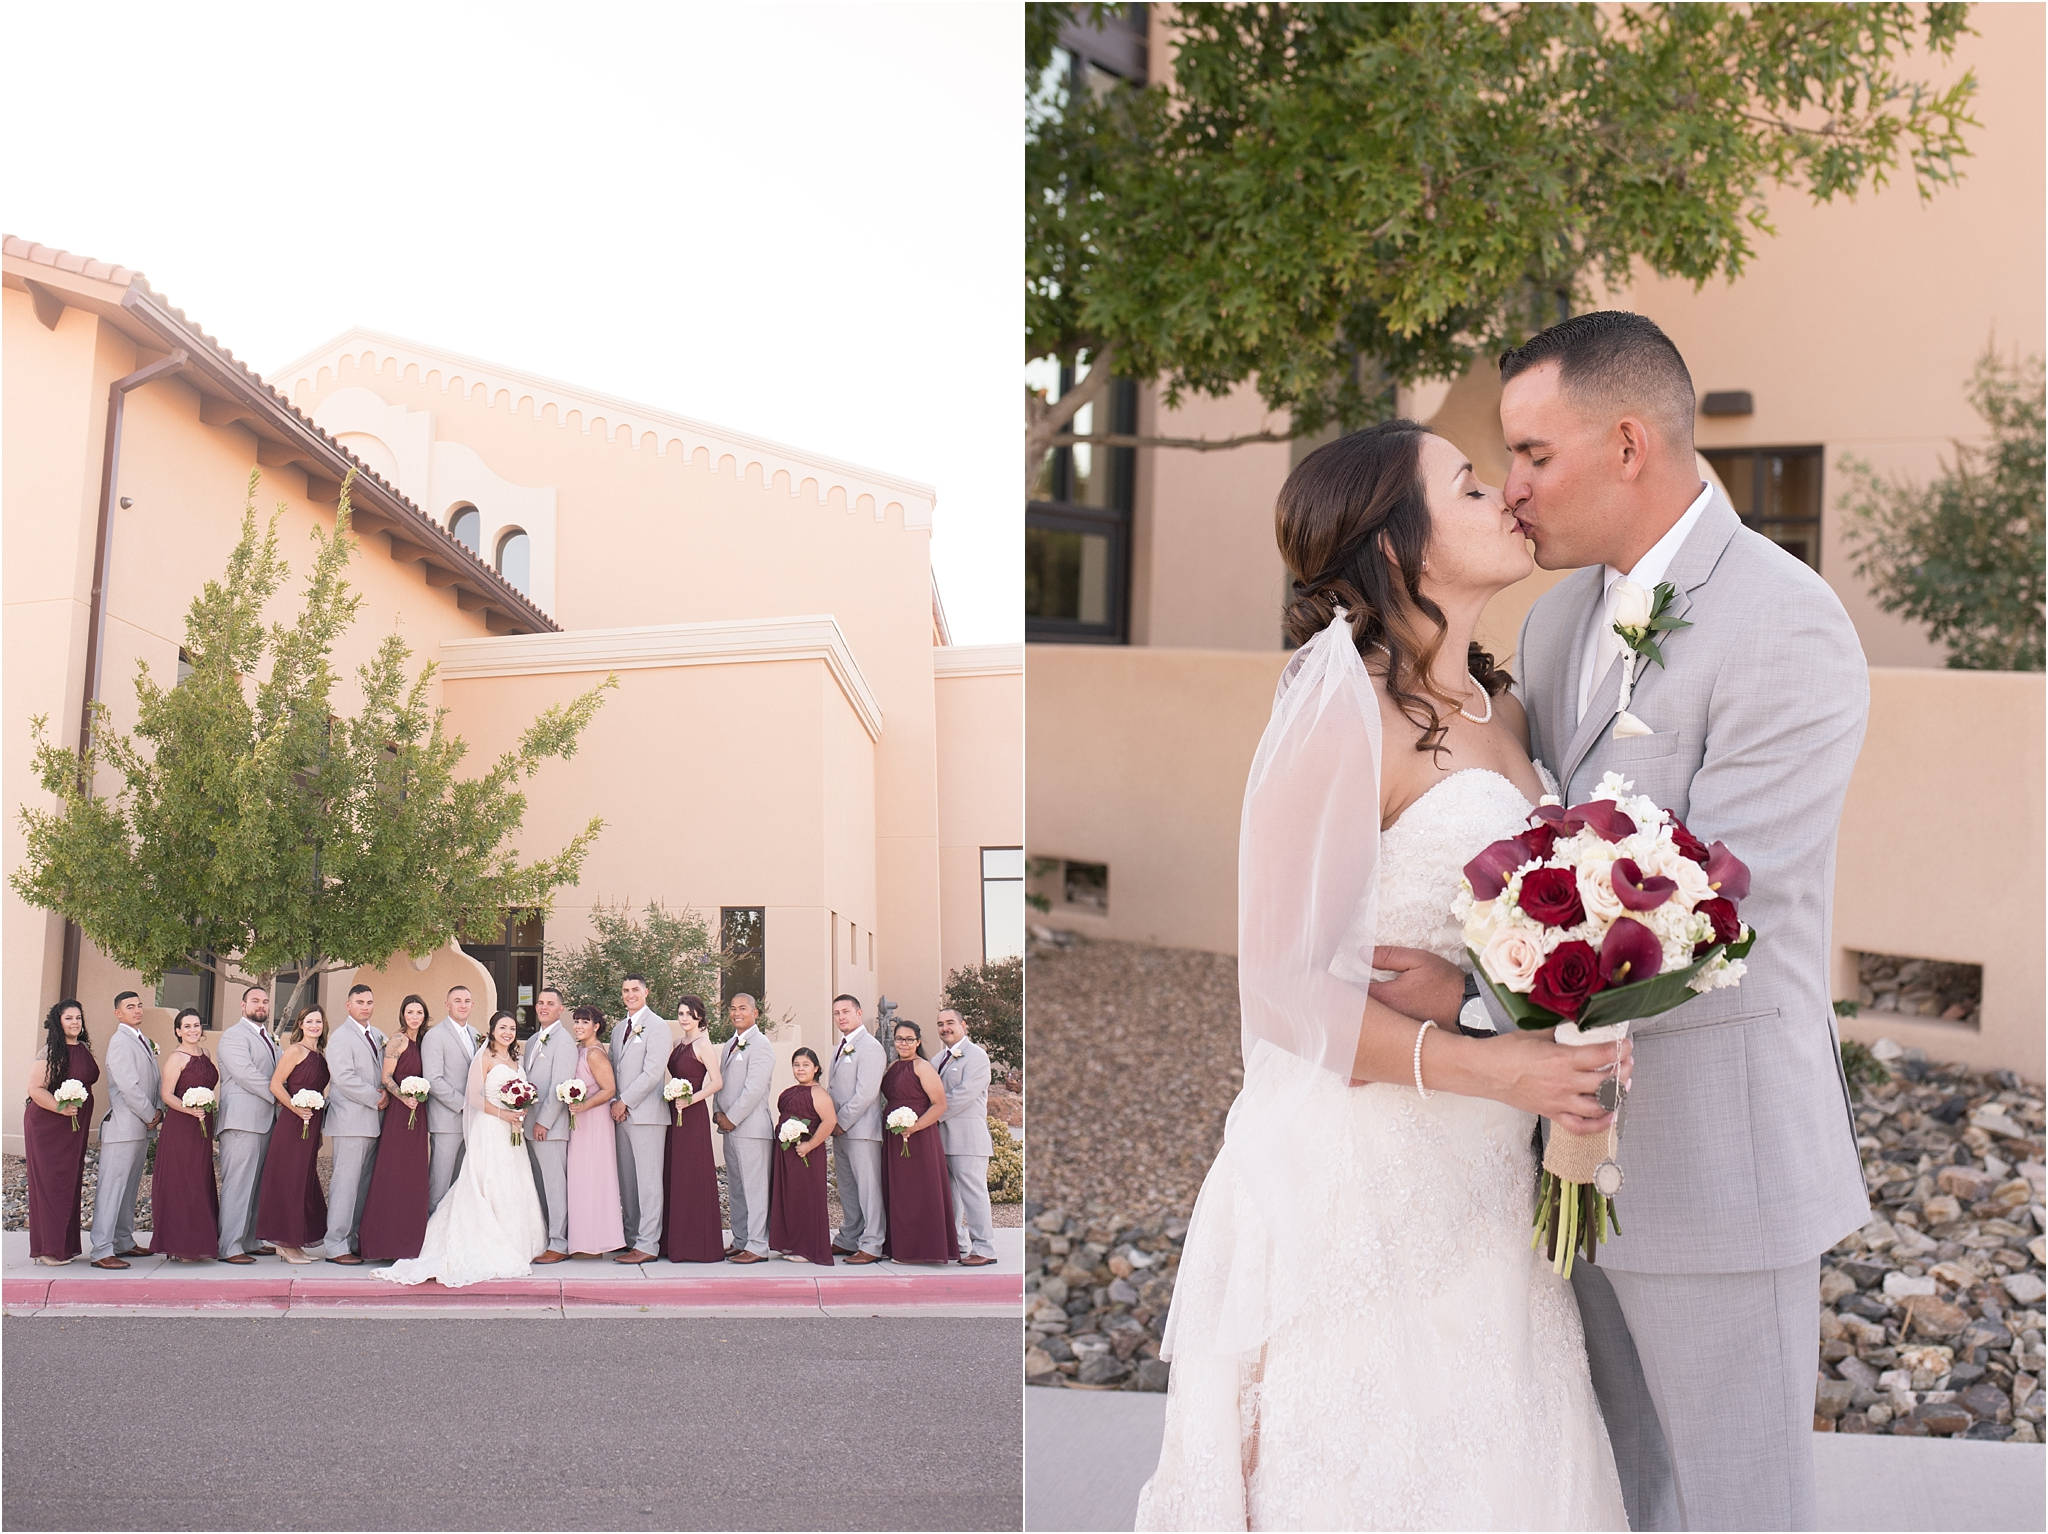 kayla kitts photography - albuquerque wedding photographer - hairpins and scissors - a cake odyssey - new mexico wedding photographer_0043.jpg